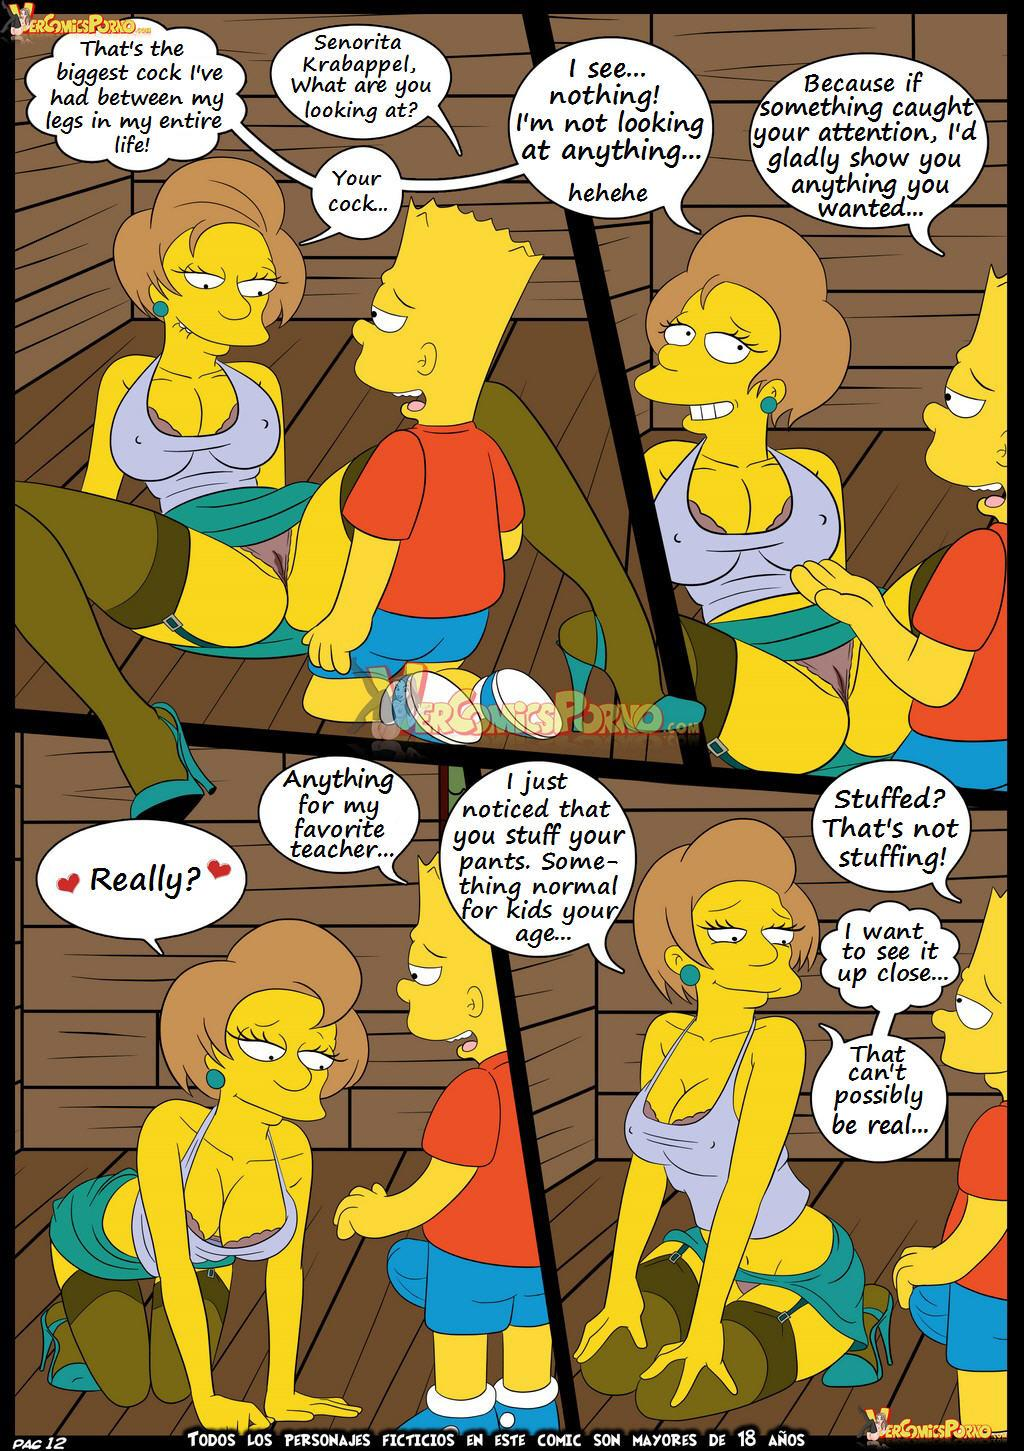 13 37 - The Simpsons. Part 5.